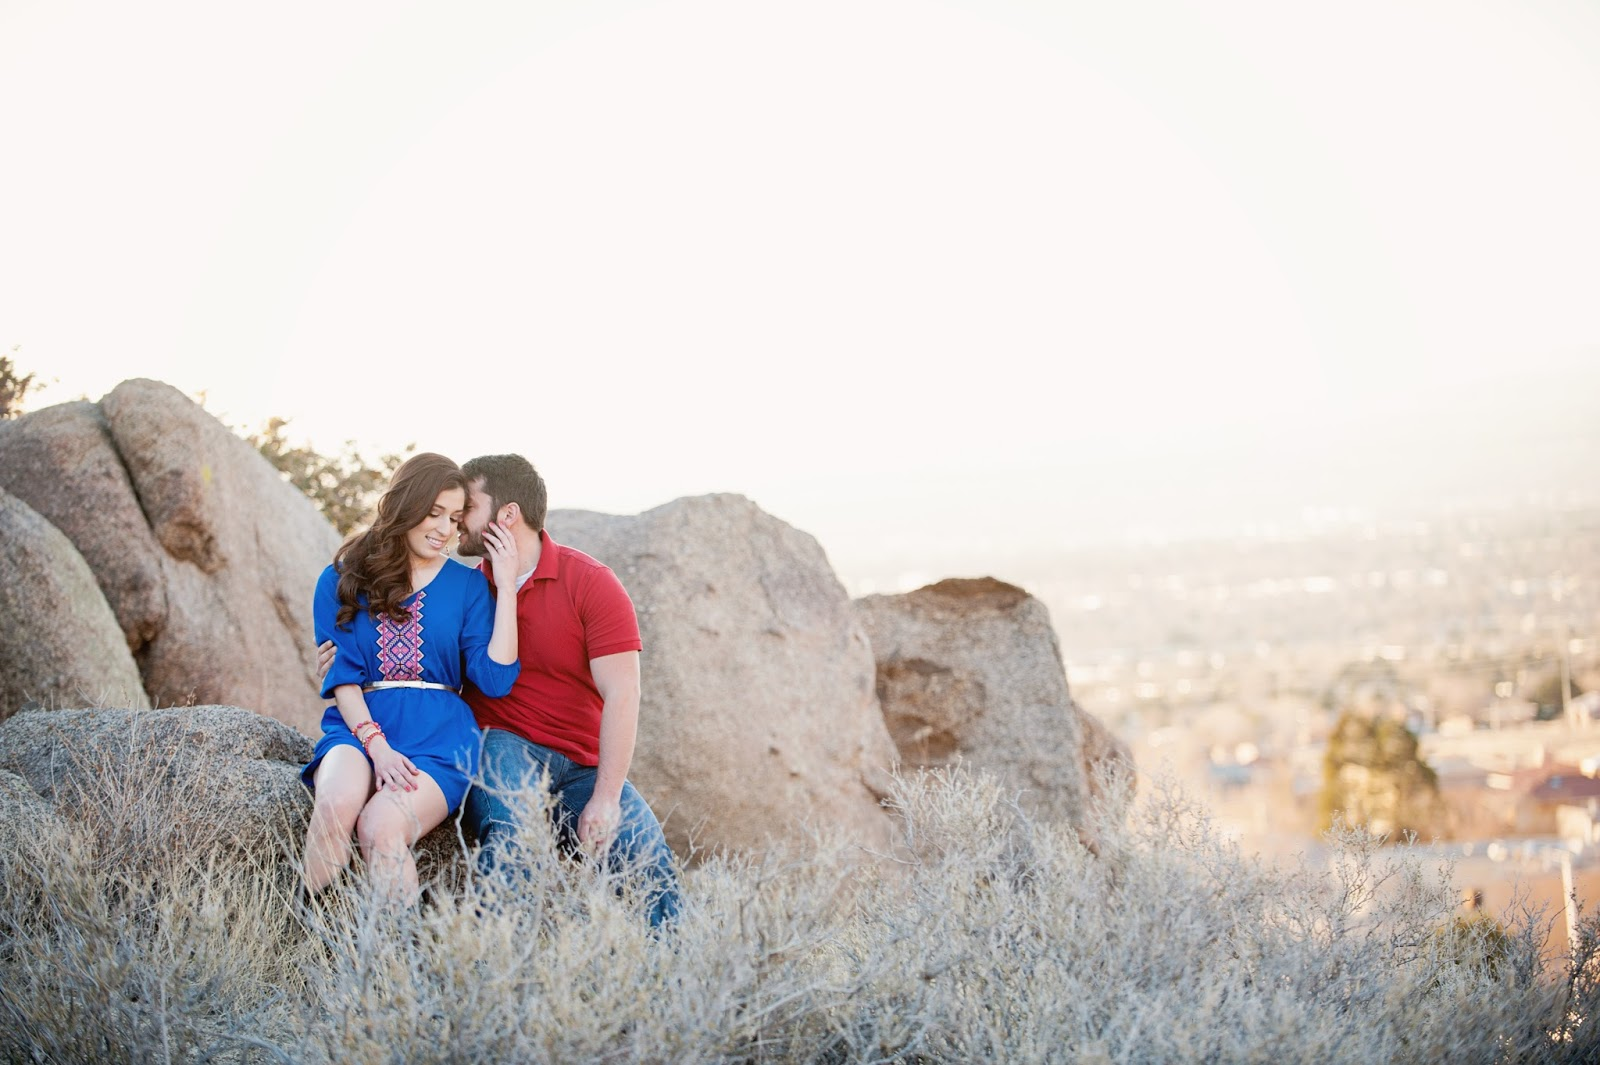 albuquerque wedding photographer, maura jane photography, new mexico true, new mexico engagement, desert engagement pictures, sandia foothills, sandia engagement session, engagement ideas in albuquerque, albuquerque engagement photography, wedding photographers in new mexico